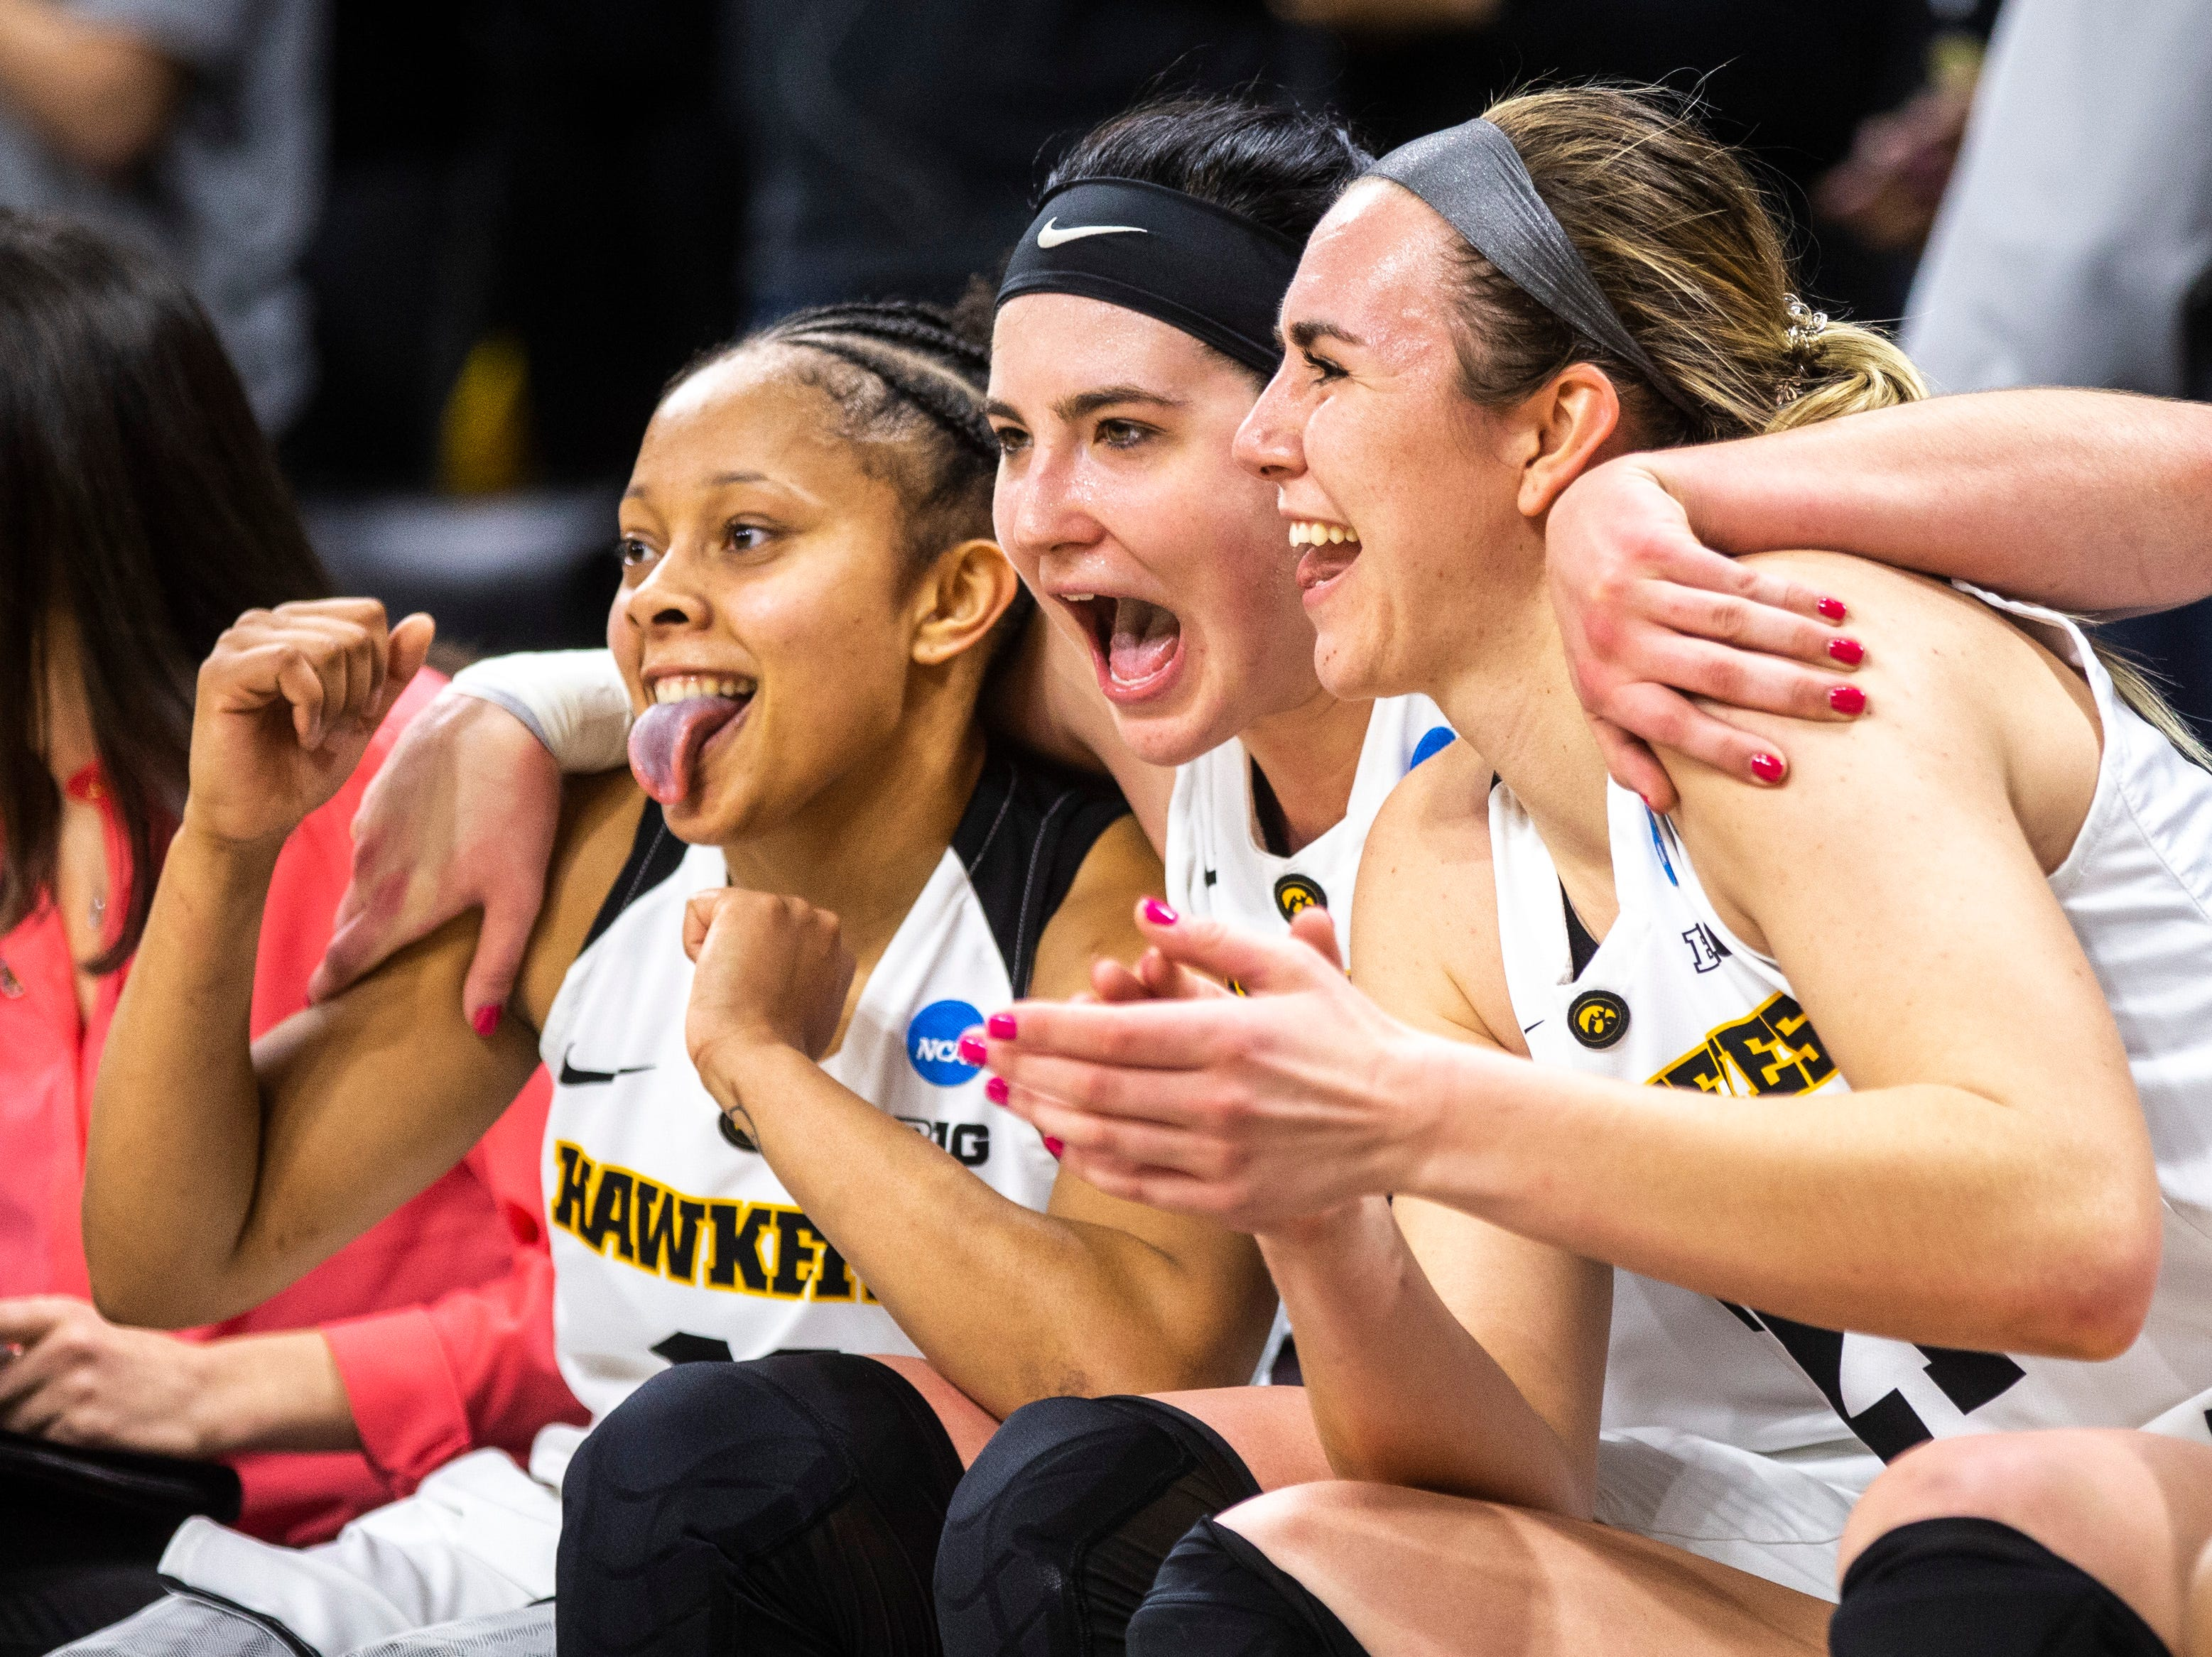 Iowa guard Tania Davis, center Megan Gustafson and forward Hannah Stewart celebrate on the bench during a NCAA women's basketball tournament second-round game, Sunday, March 24, 2019, at Carver-Hawkeye Arena in Iowa City, Iowa.